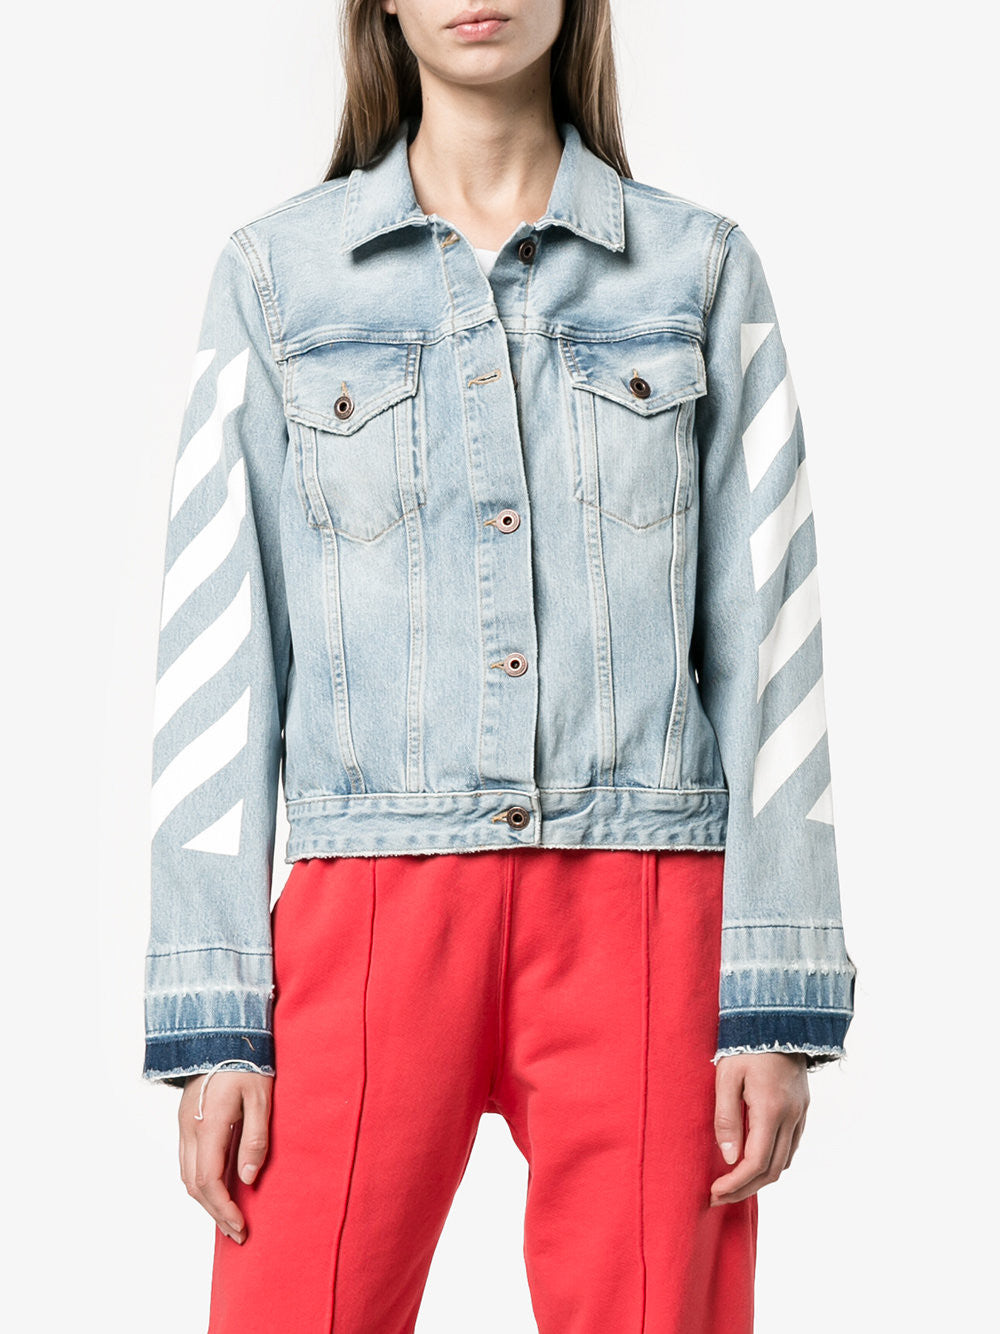 Diagonal Stripe Denim Jacket | OWEA063E173860947101